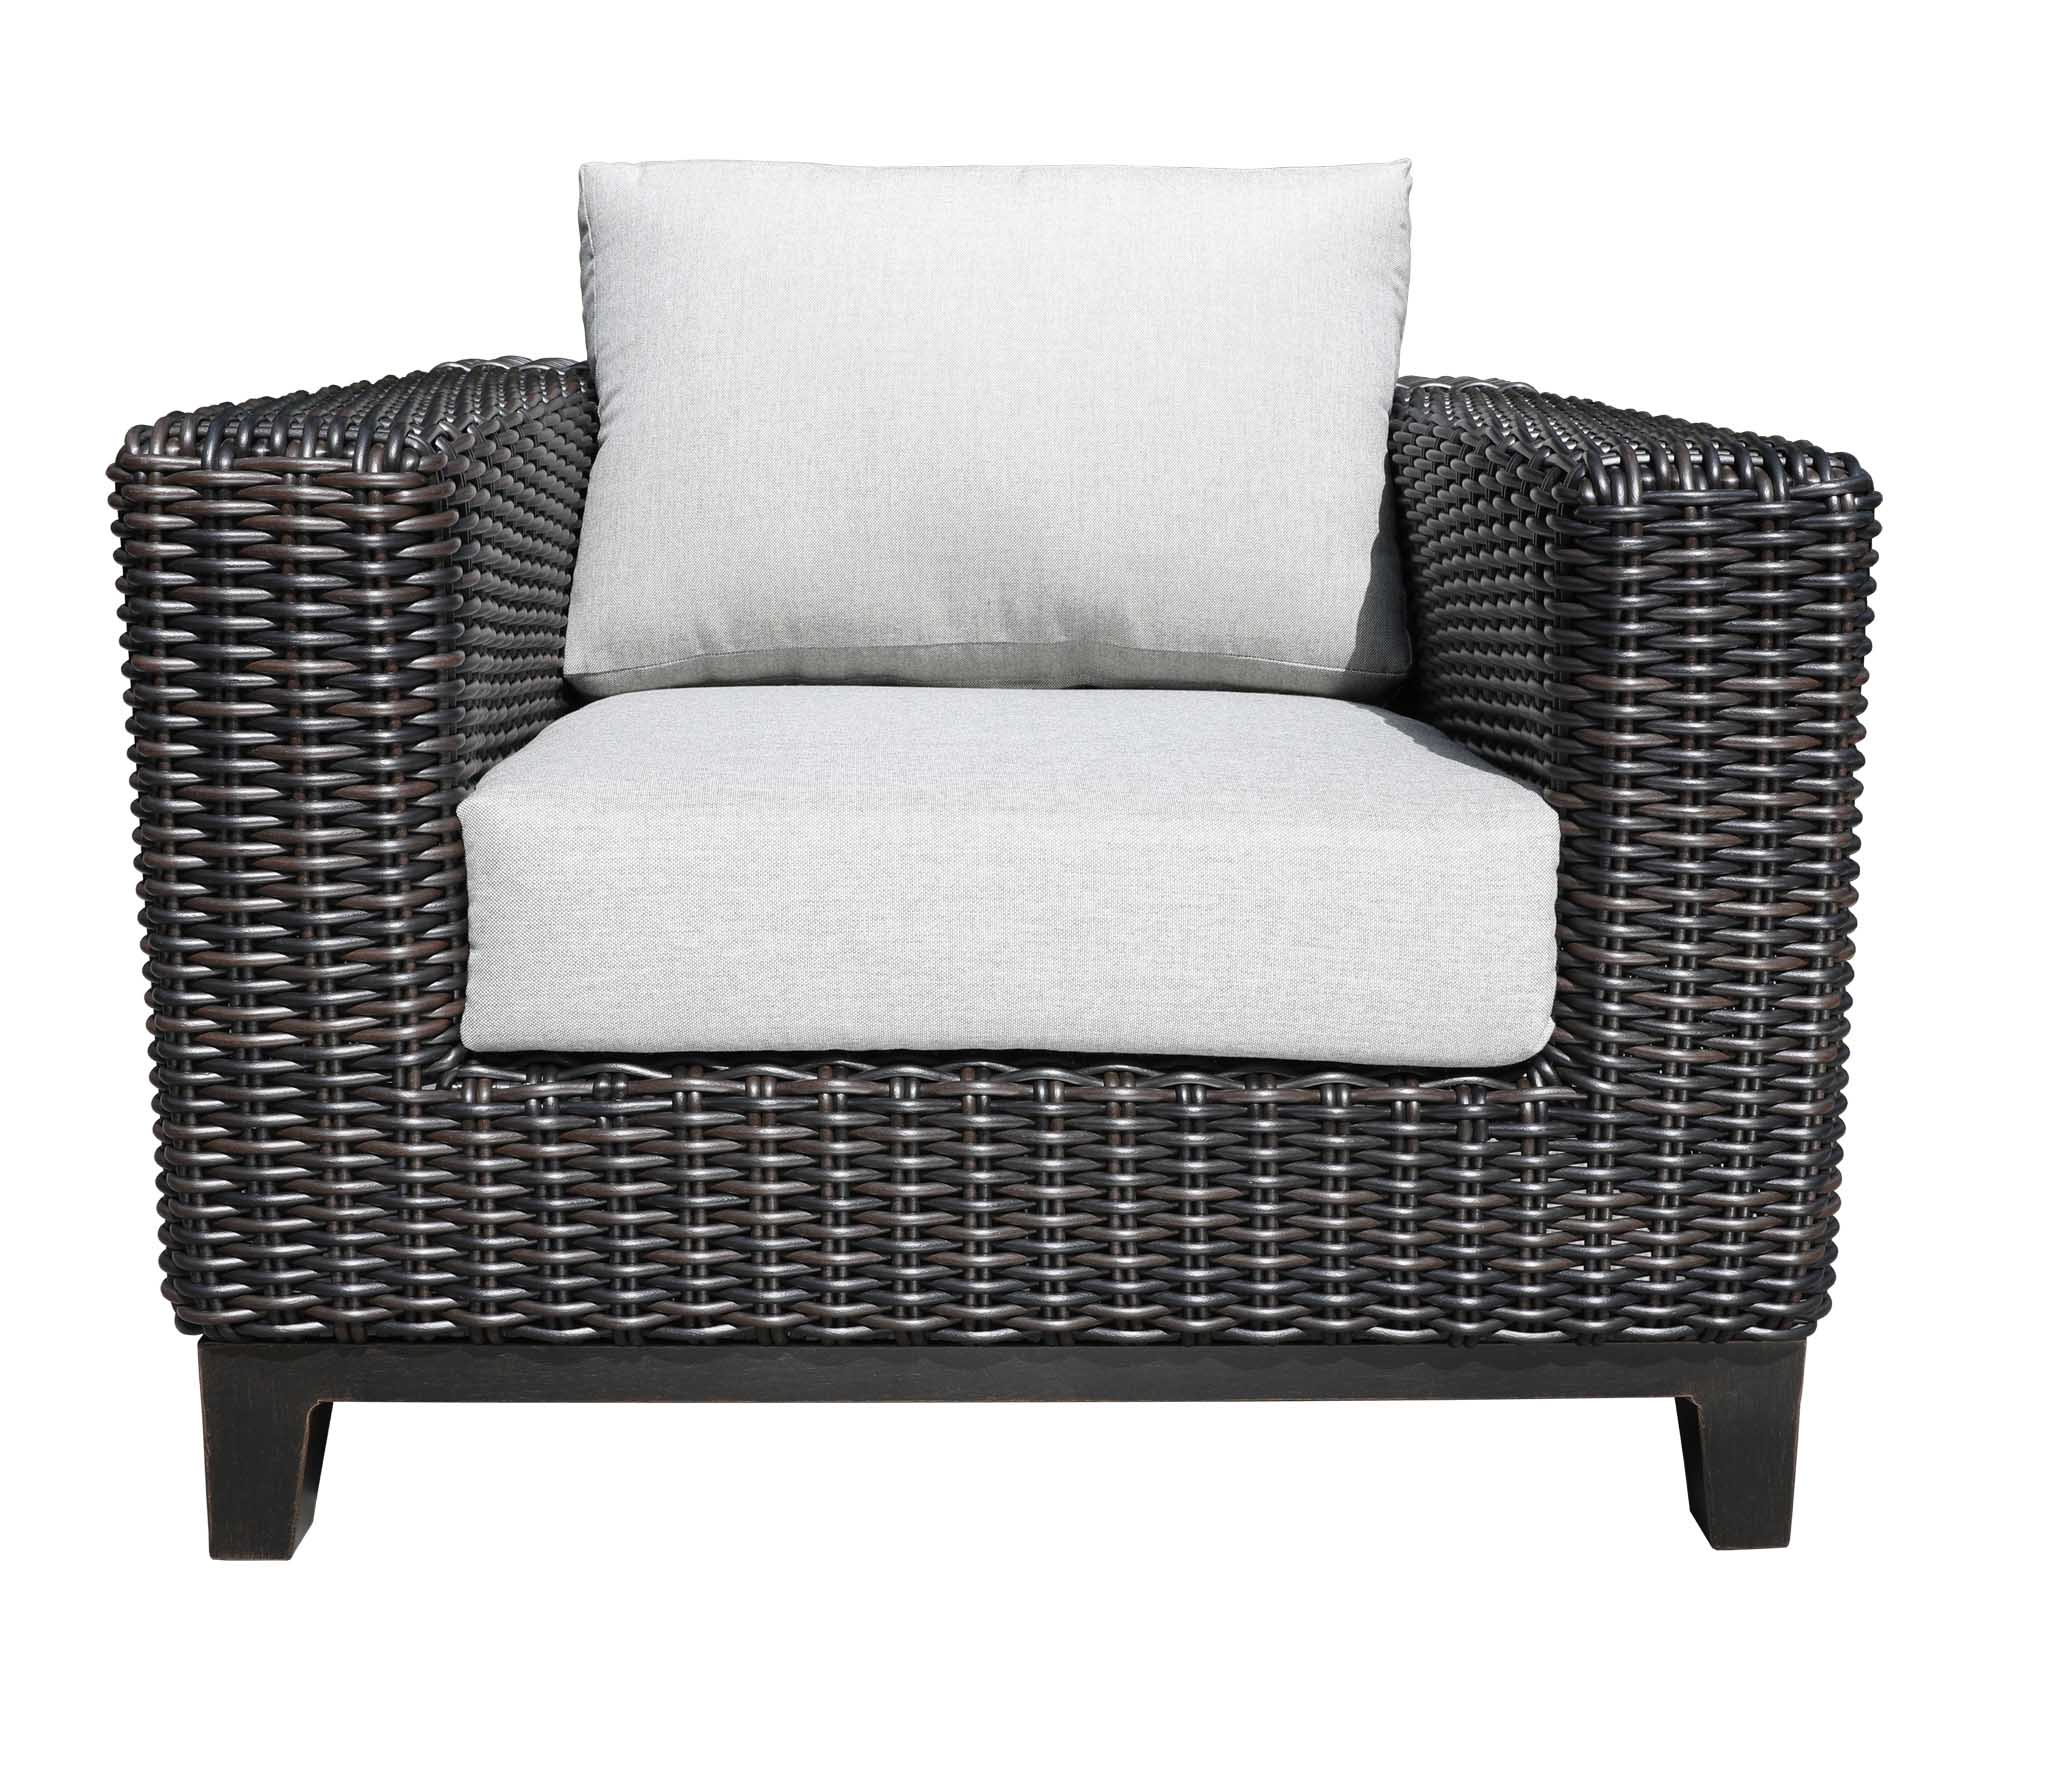 Oakville Outdoor Furniture Aubrey Deep Seat 9441 Patio Furniture Wicker Aubrey